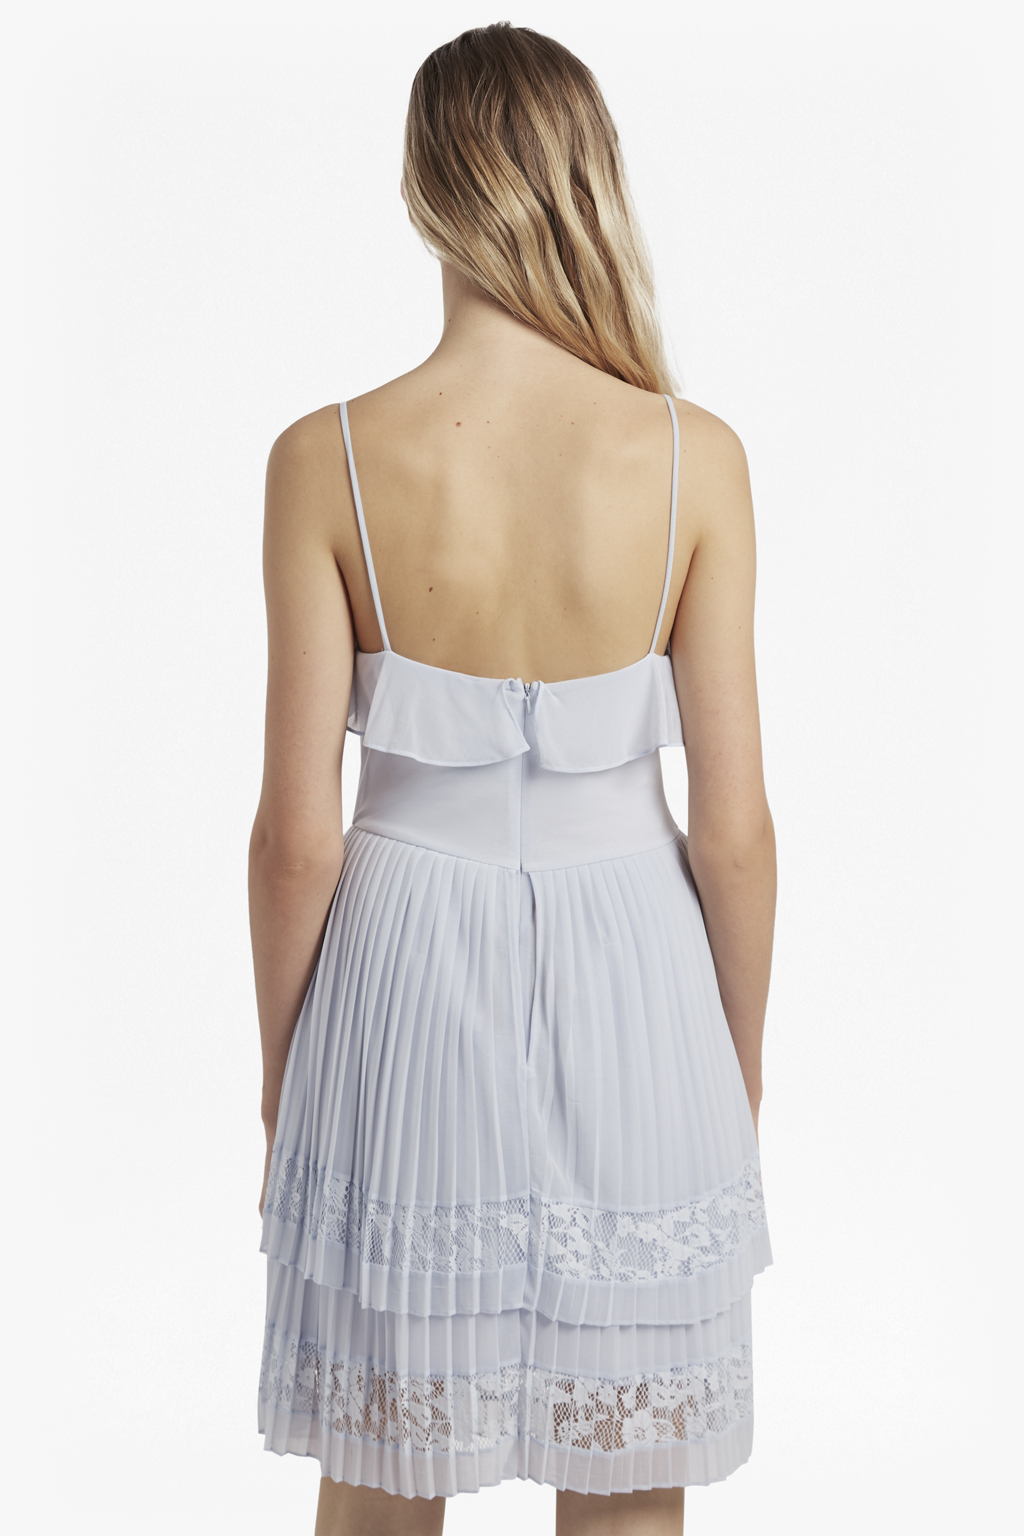 French Connection Pleat Lace Jersey S//LS V-Neck Womens Dress